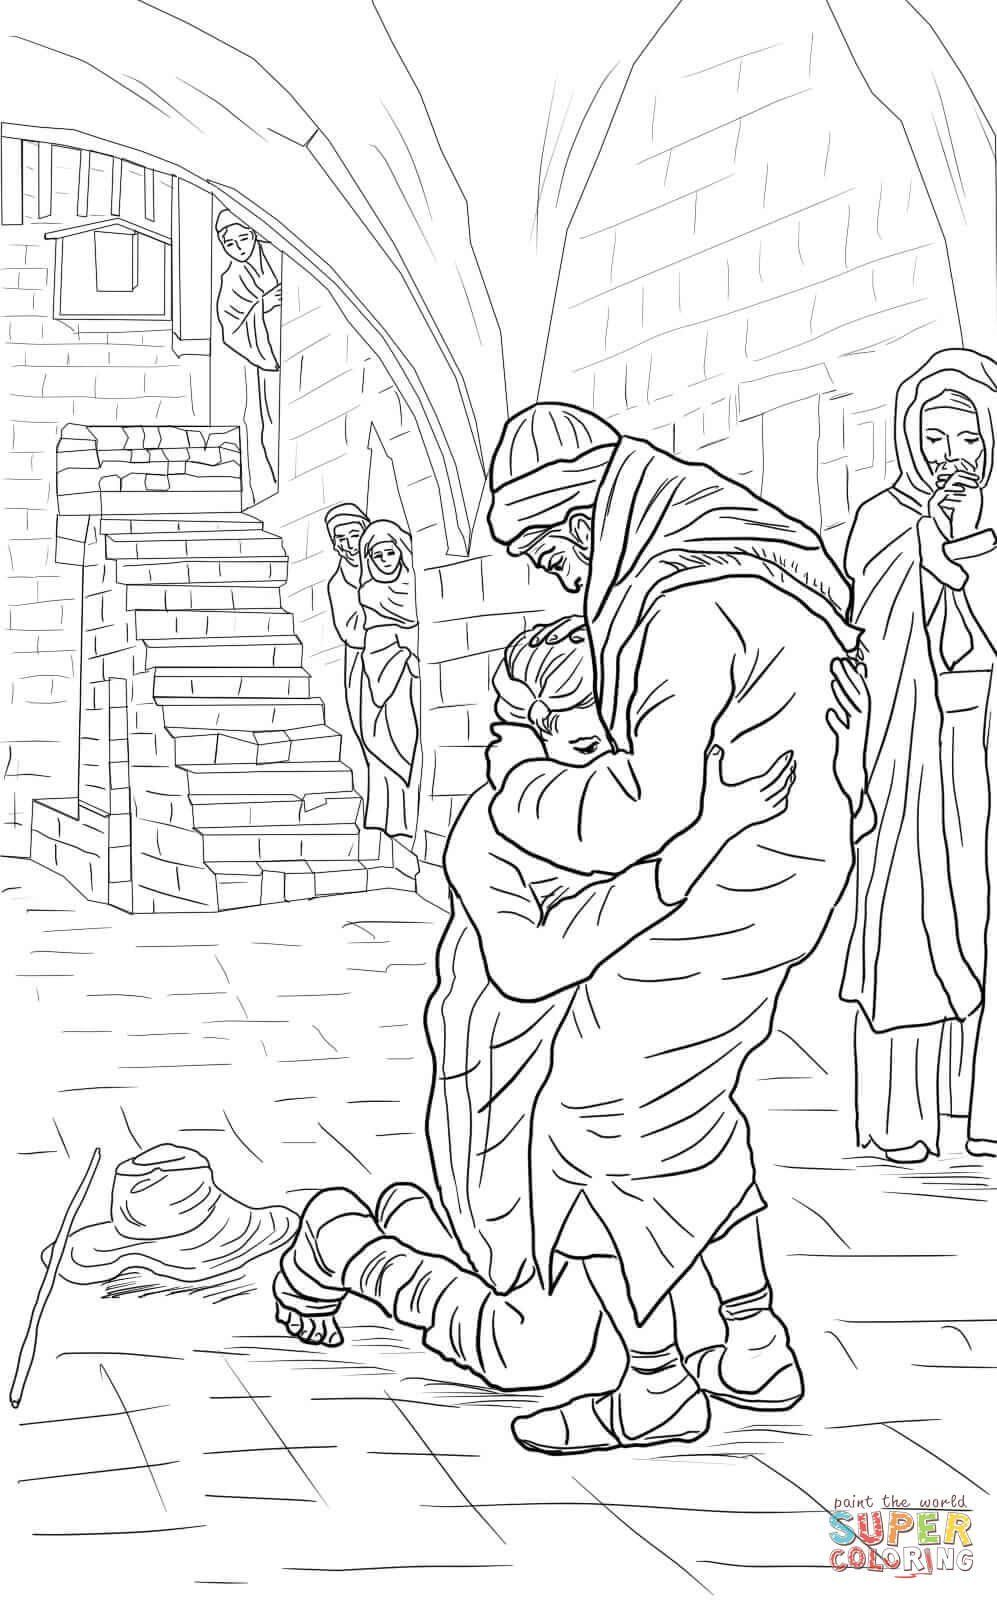 Prodical Son Coloring Page The Return Of The Prodigal Son Coloring Page Monster Truck Coloring Pages Coloring Pages Christian Coloring